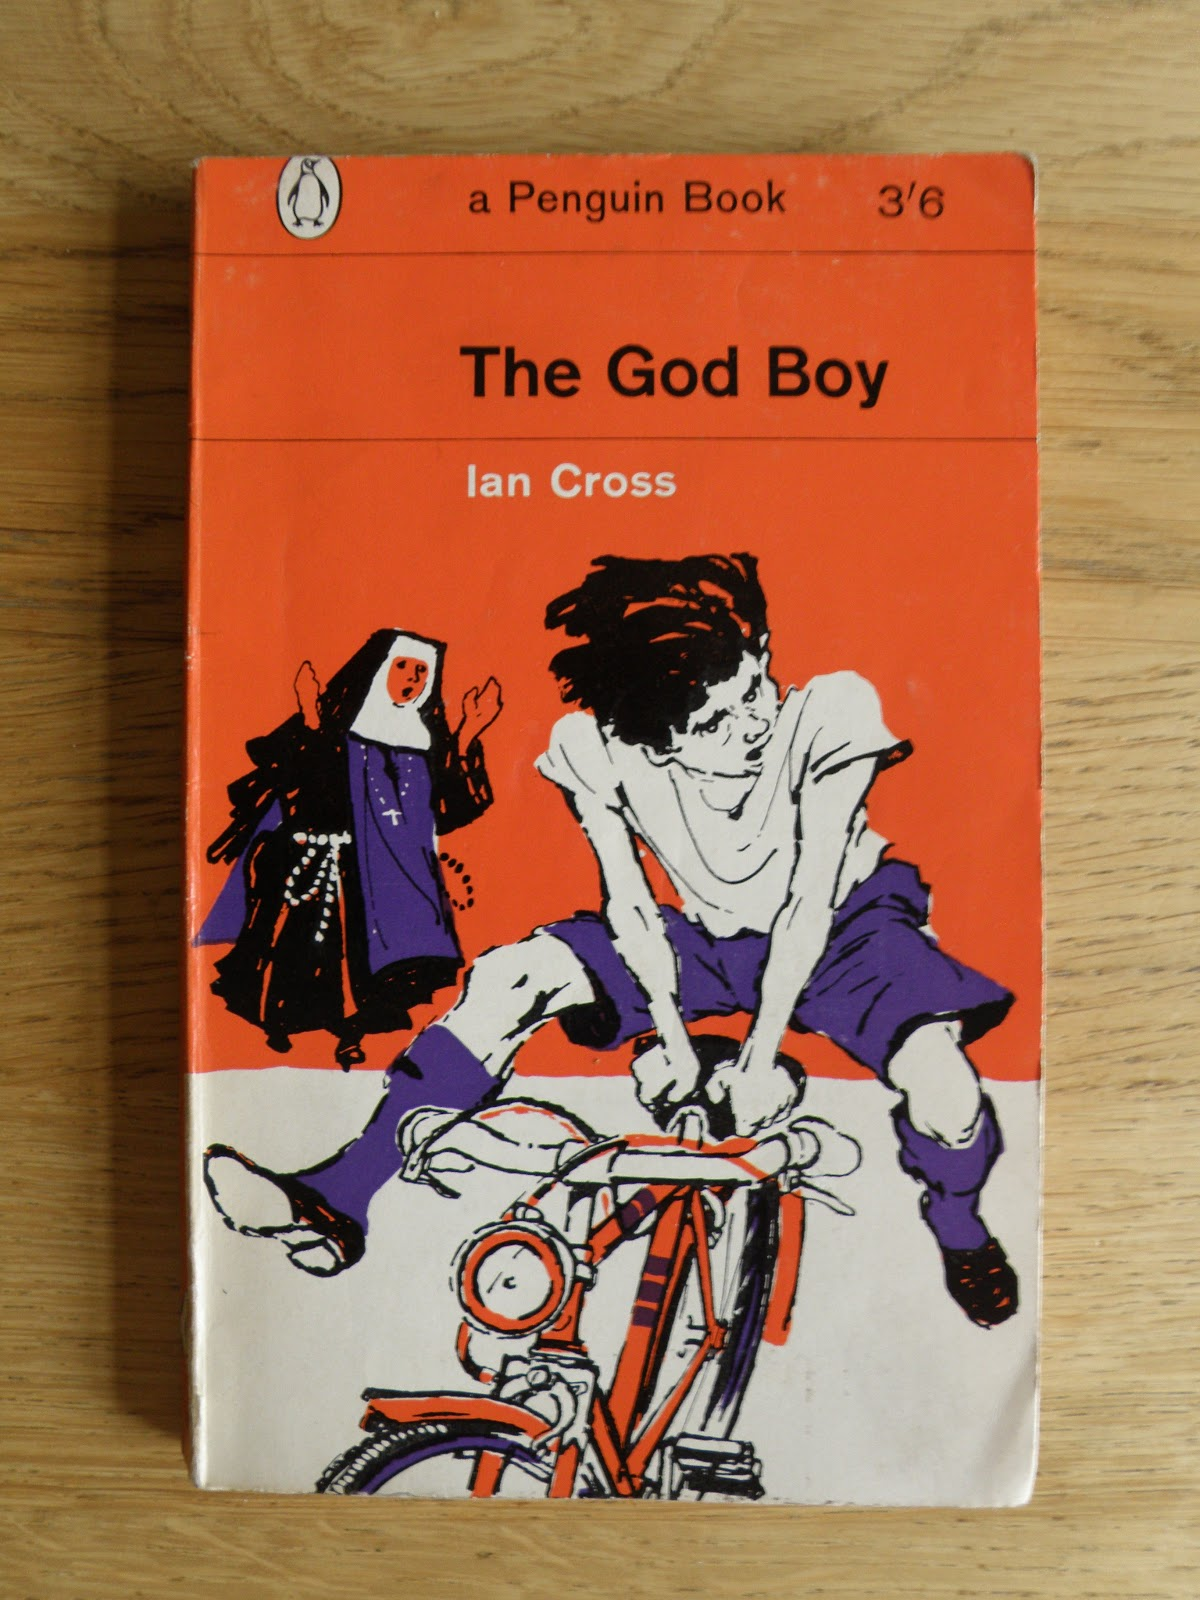 god boy ian cross essay Ian cross has written extensively as a journalist and author his most successful novel is the god boy, published in many countries and adapted over the years for stage, film and opera productions.